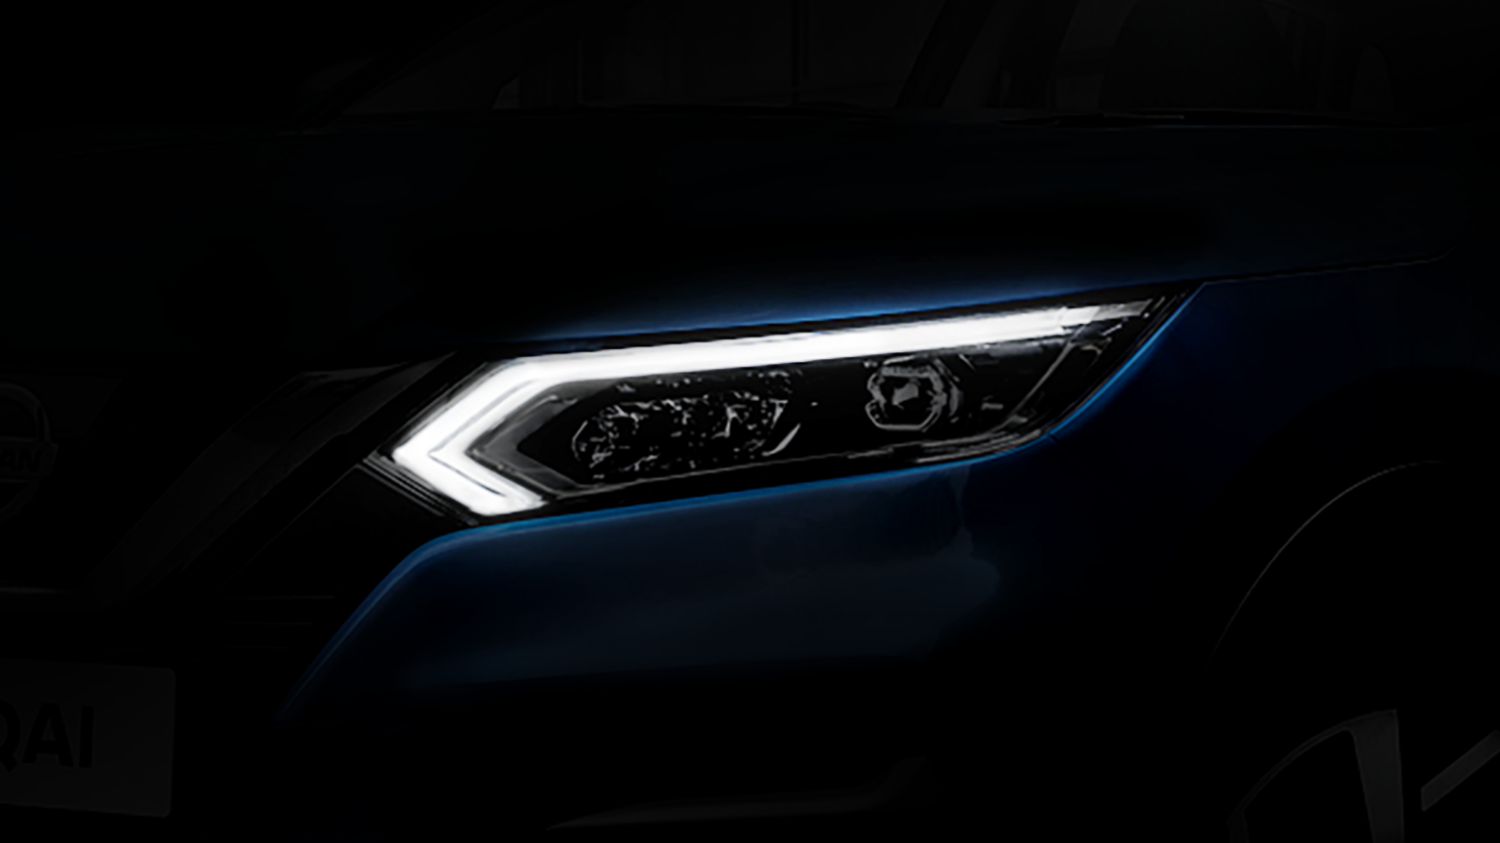 New Nissan Qashqai teaser with stunning looks